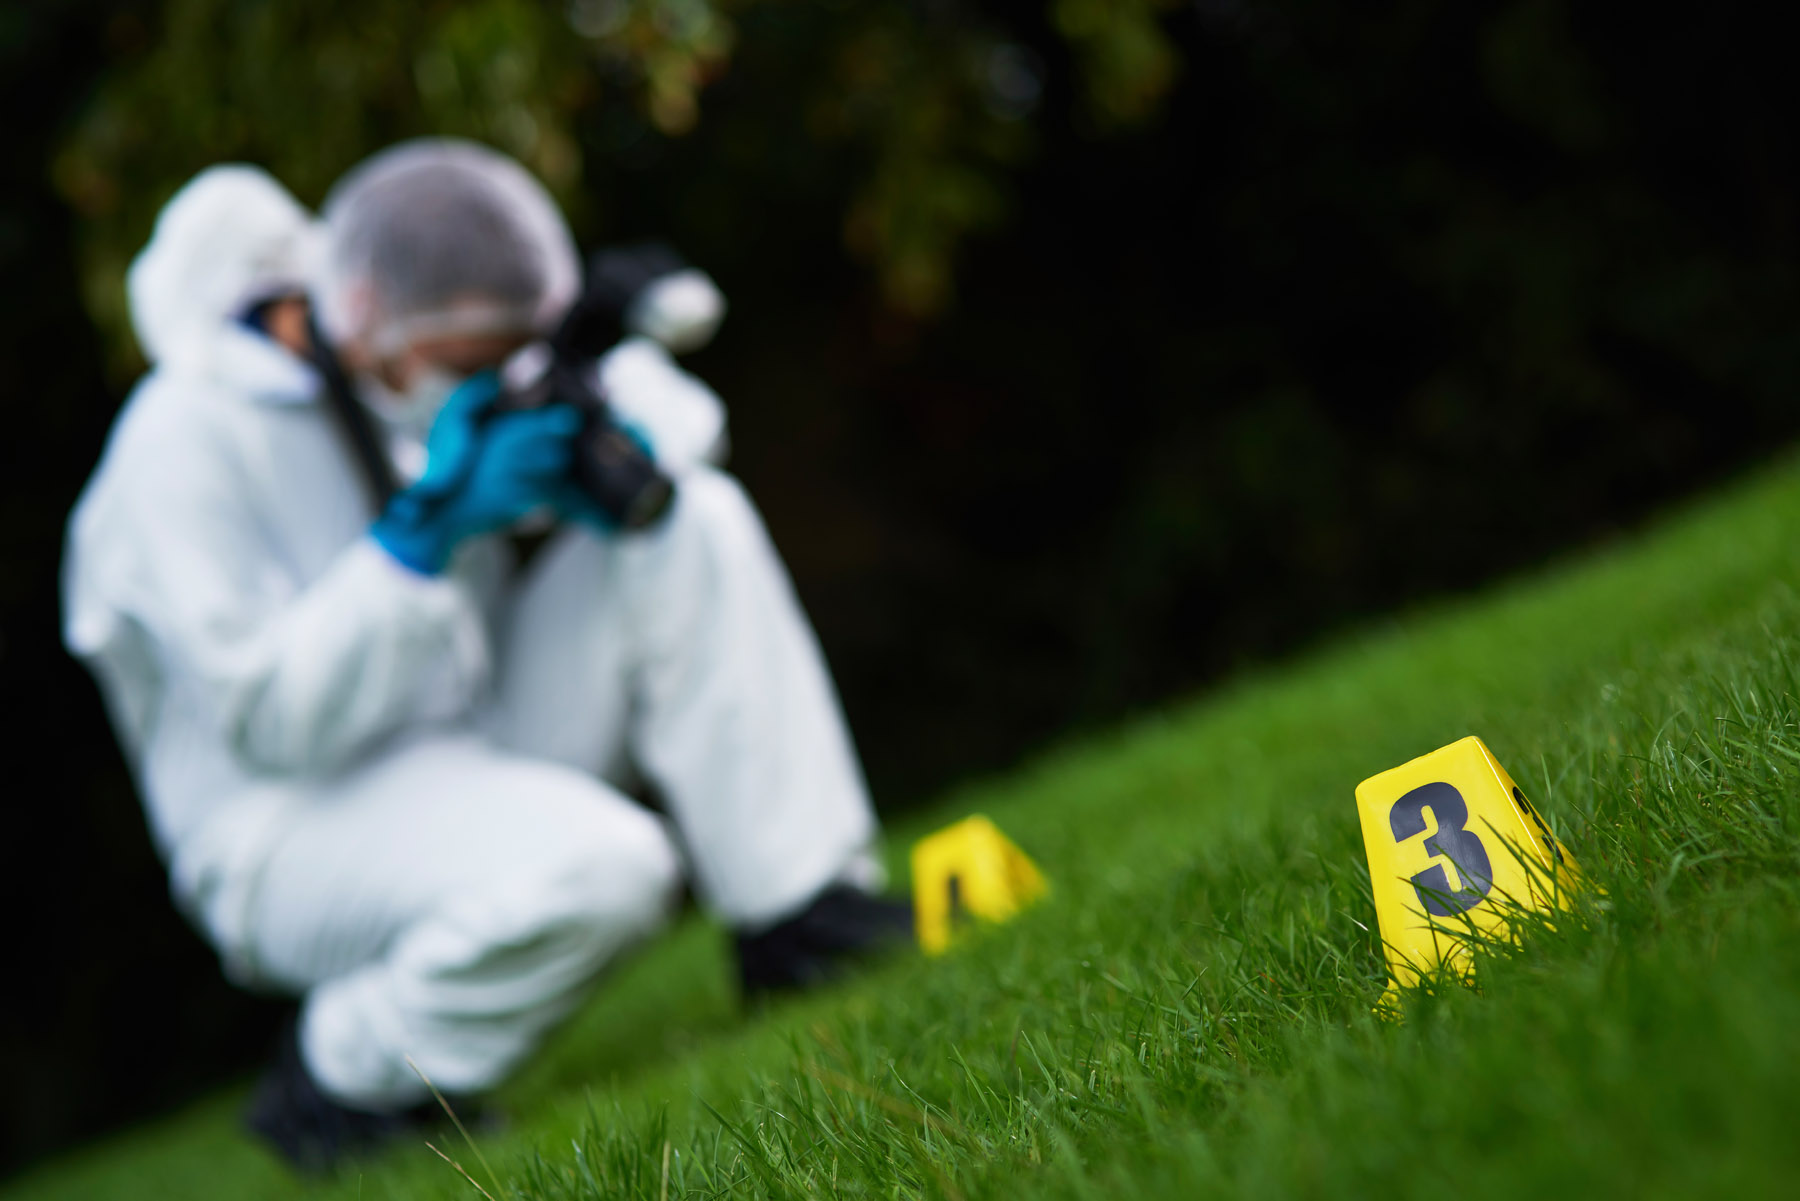 Police Forensics on site